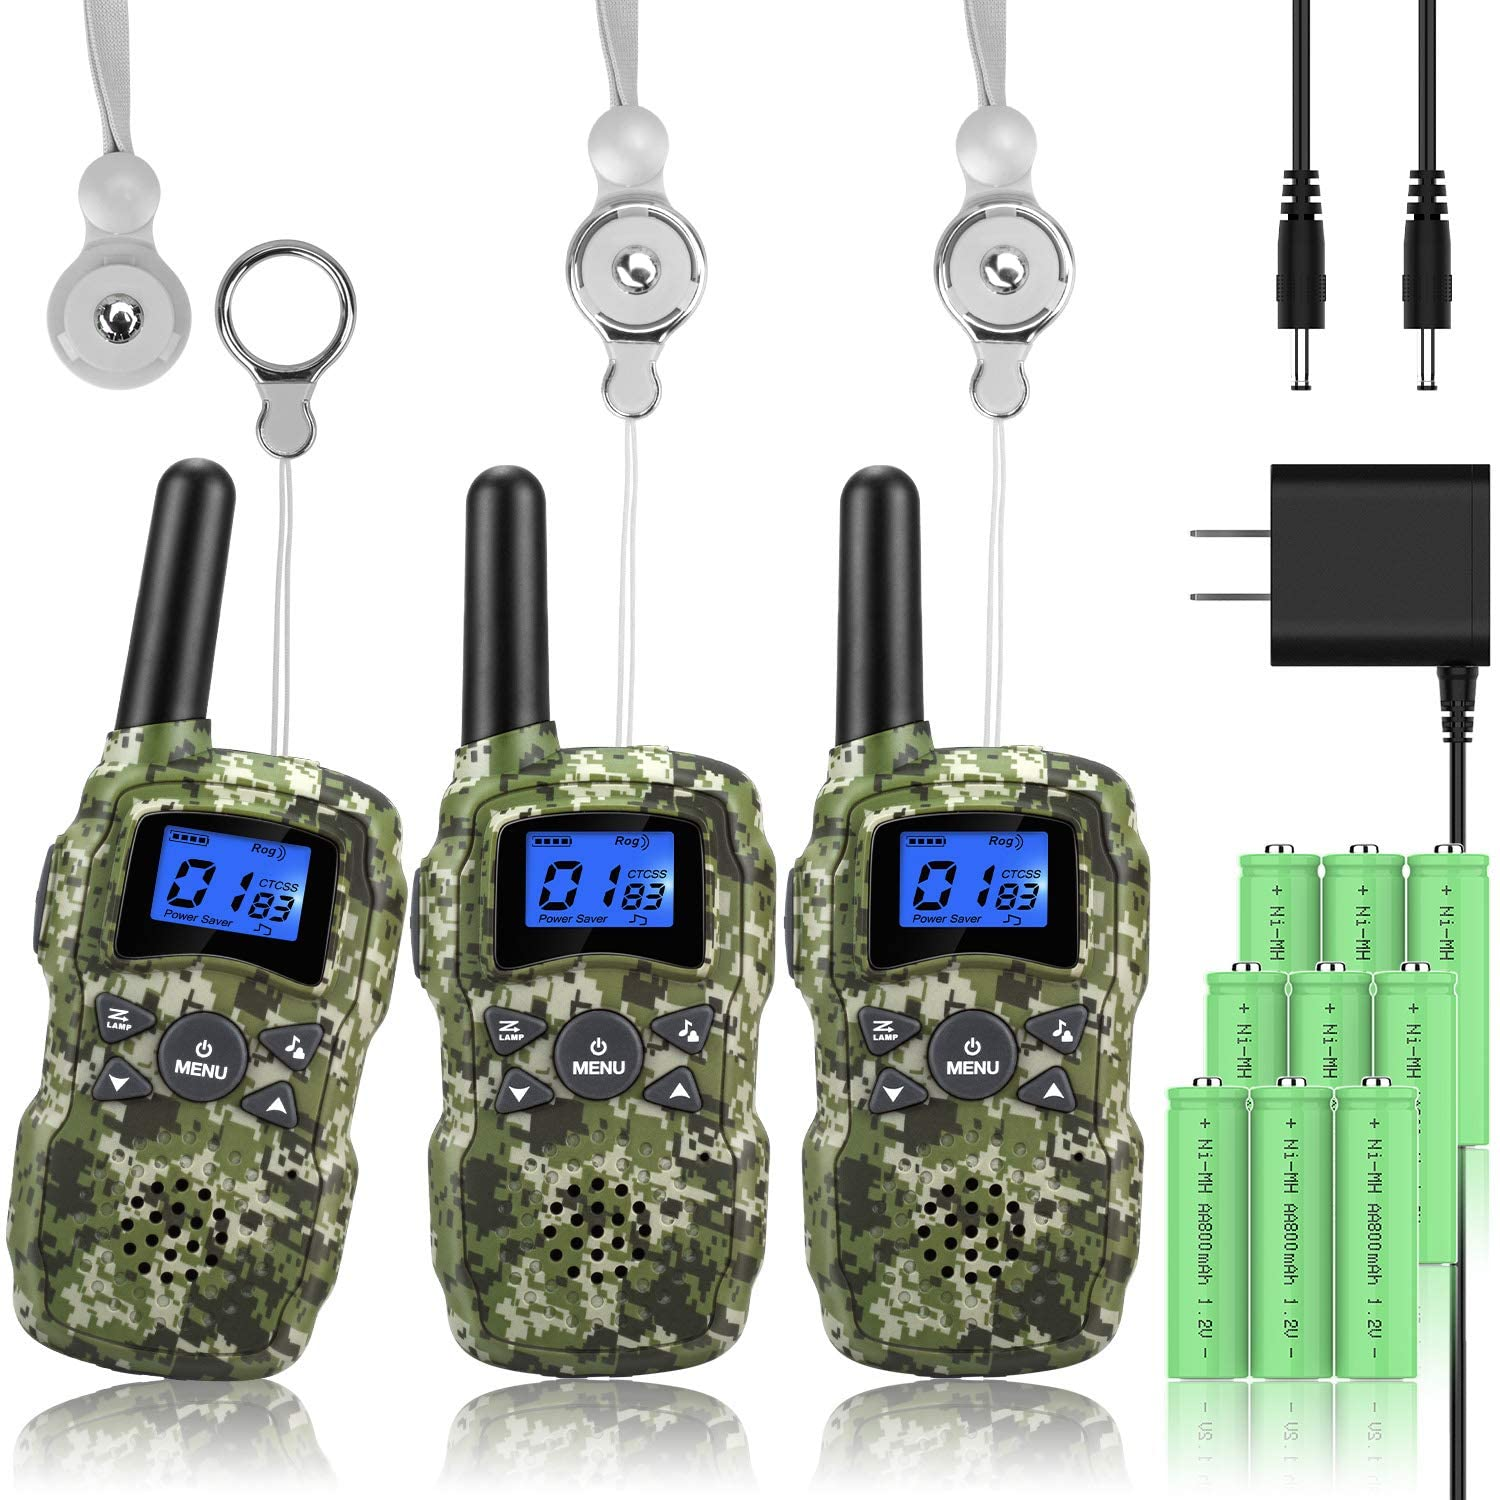 Wishouse Rechargeable Walkie Talkies, 3 Pack Camouflage